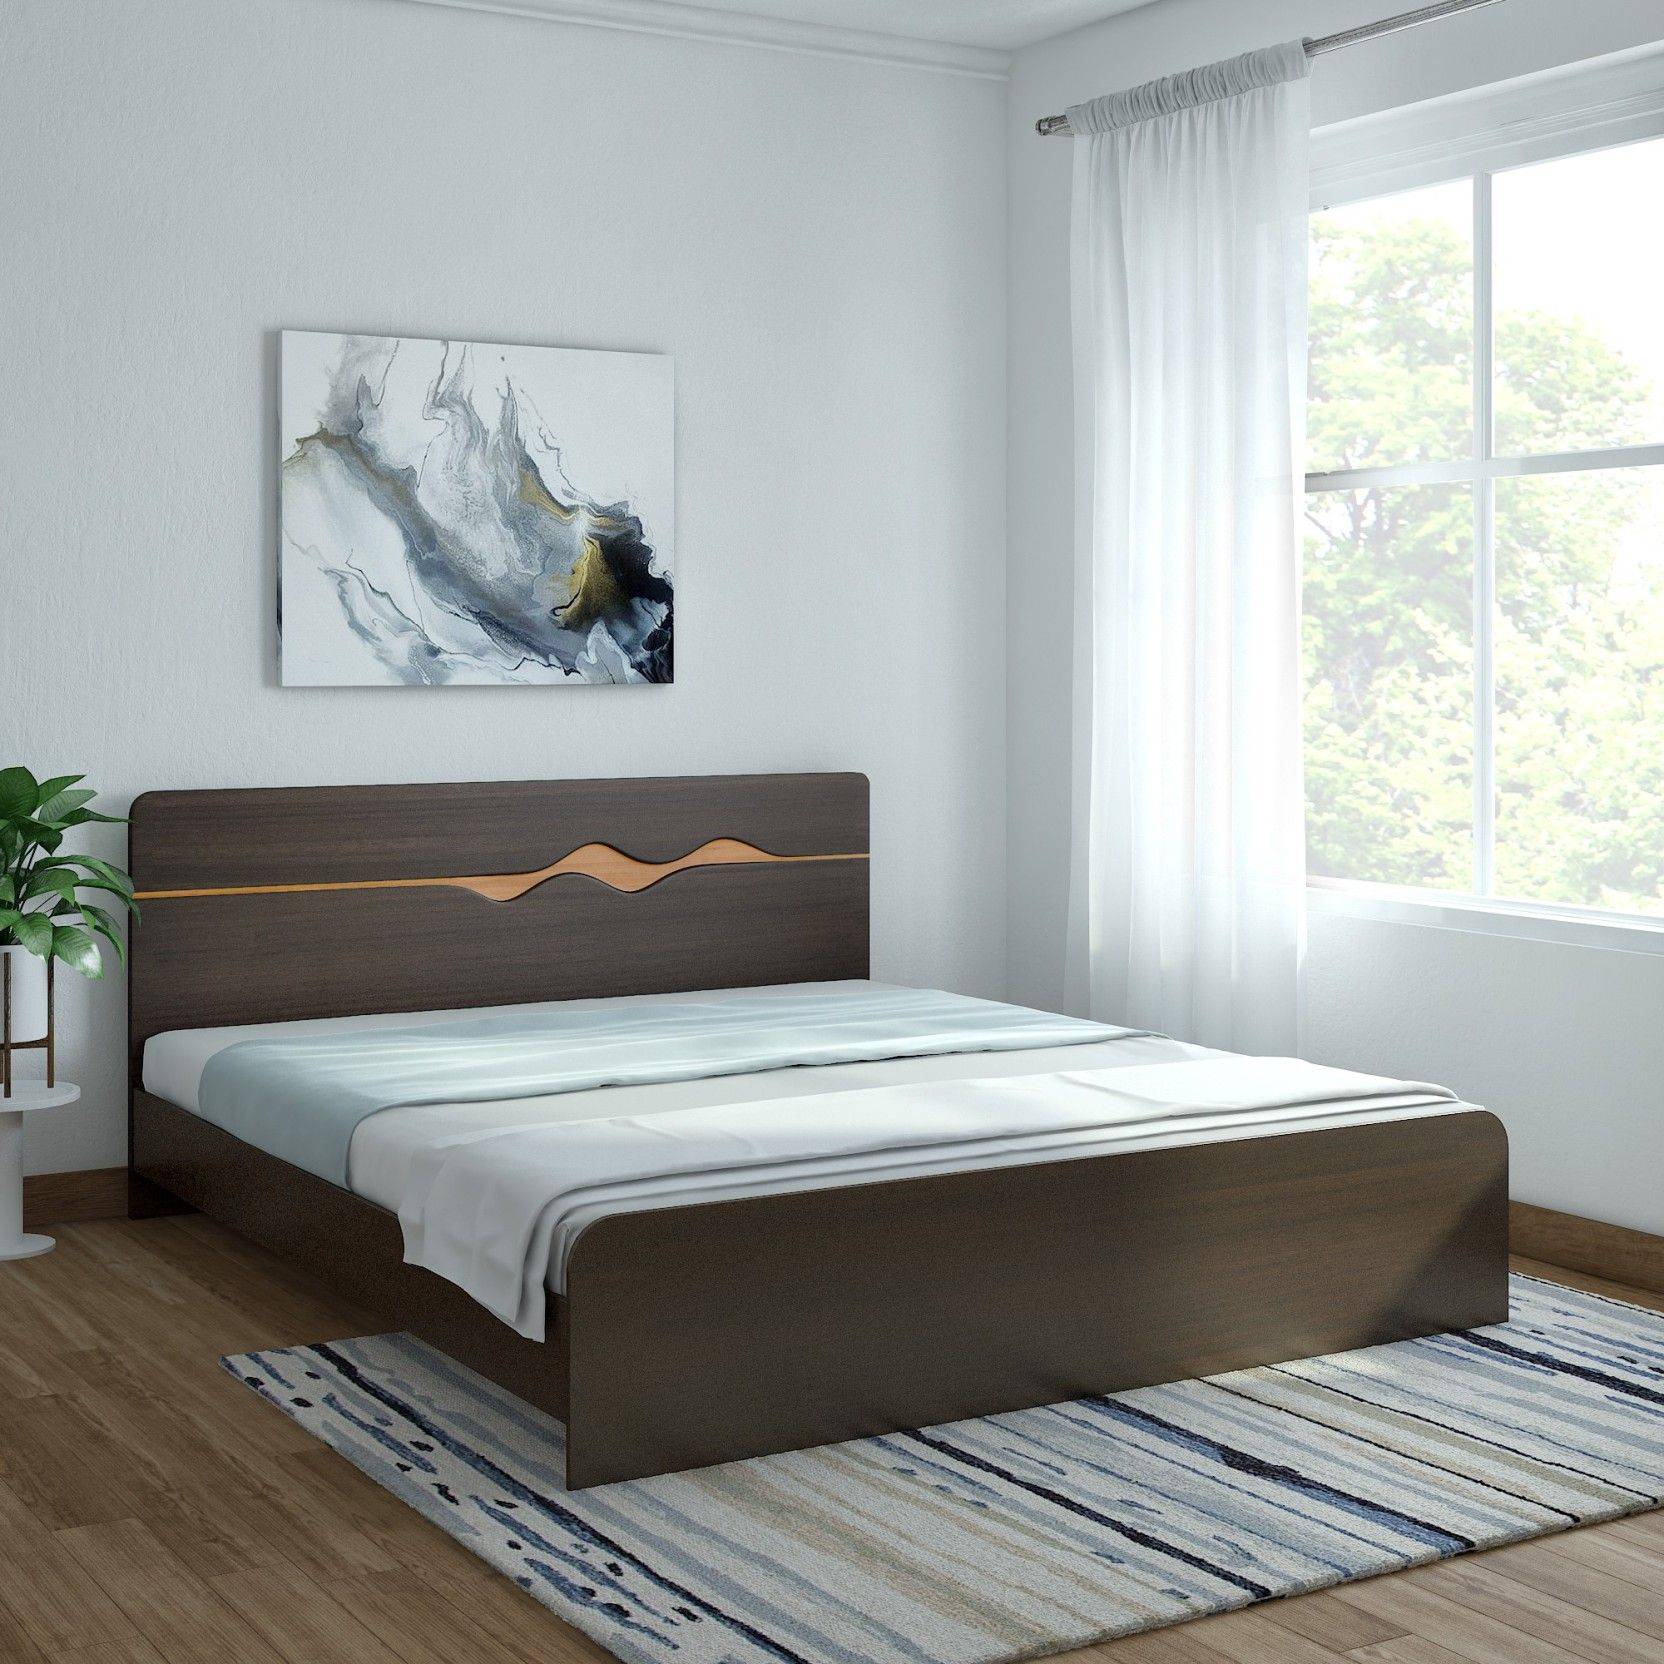 Hometown Swirl Without Box Storage Engineered Wood King Bed Price In India Buy Hometown Swirl Without Box S Grey Carpet Living Room Grey Carpet Carpet Colors